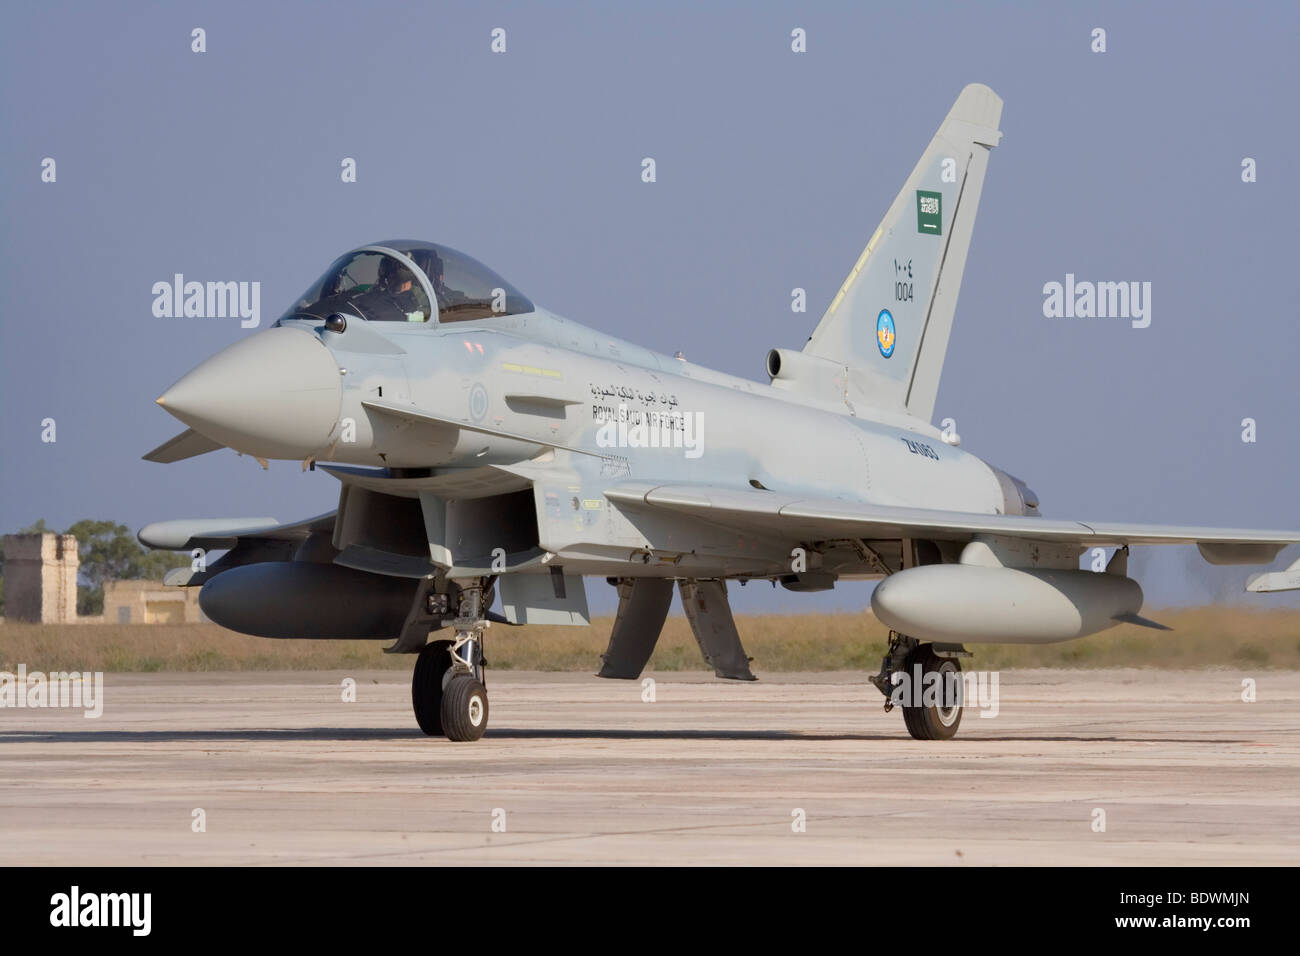 Modern military aviation. Royal Saudi Air Force Eurofighter EF 2000 Typhoon jet fighter aircraft Stock Photo